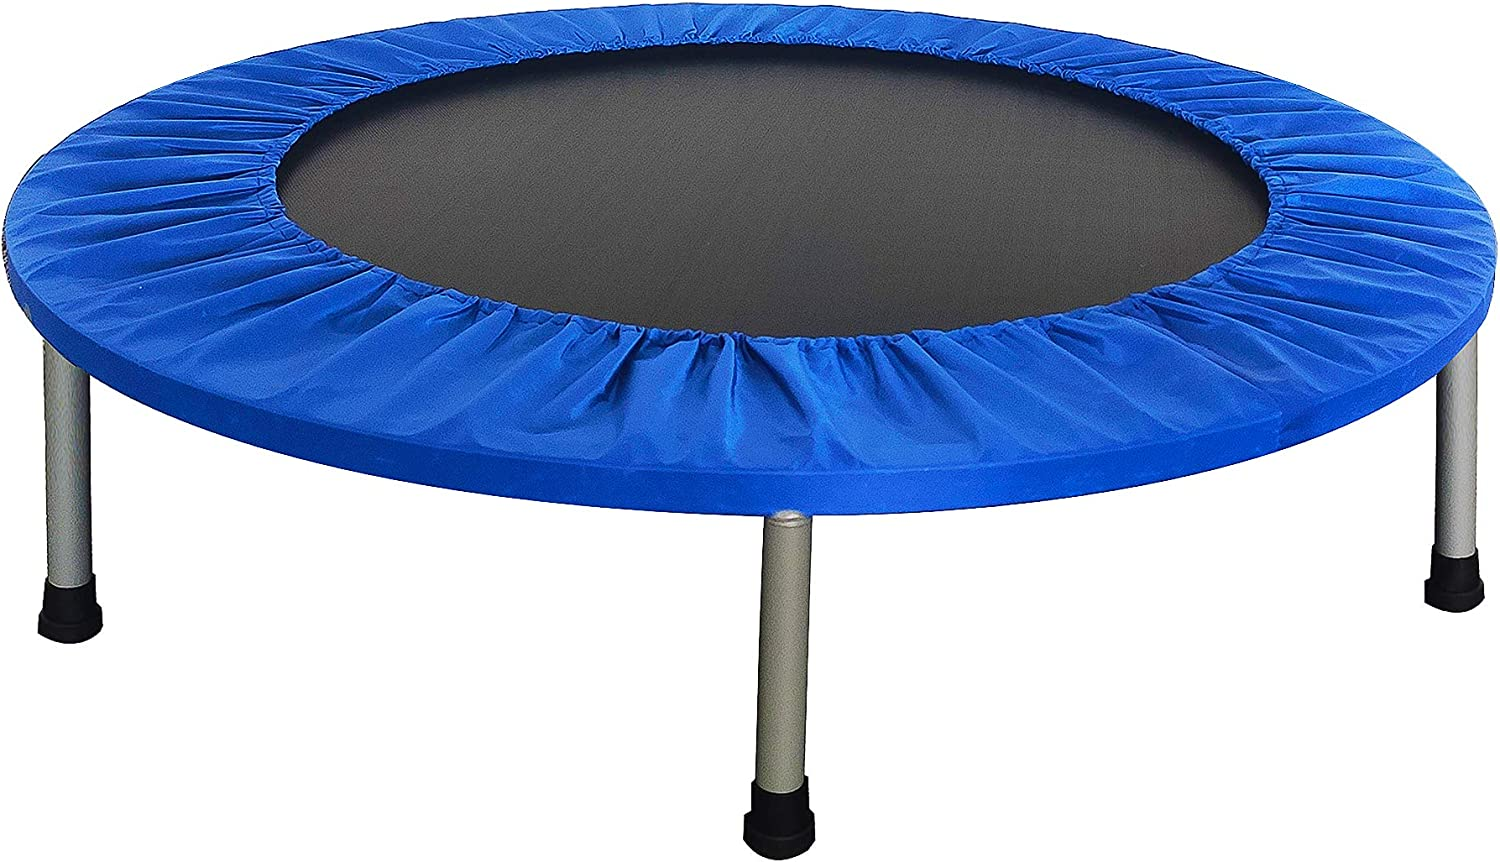 BalanceFrom 40-inch Fitness Trampoline with or Without Adjustable U-Shape Handle, 300-Pound Capacity, Black